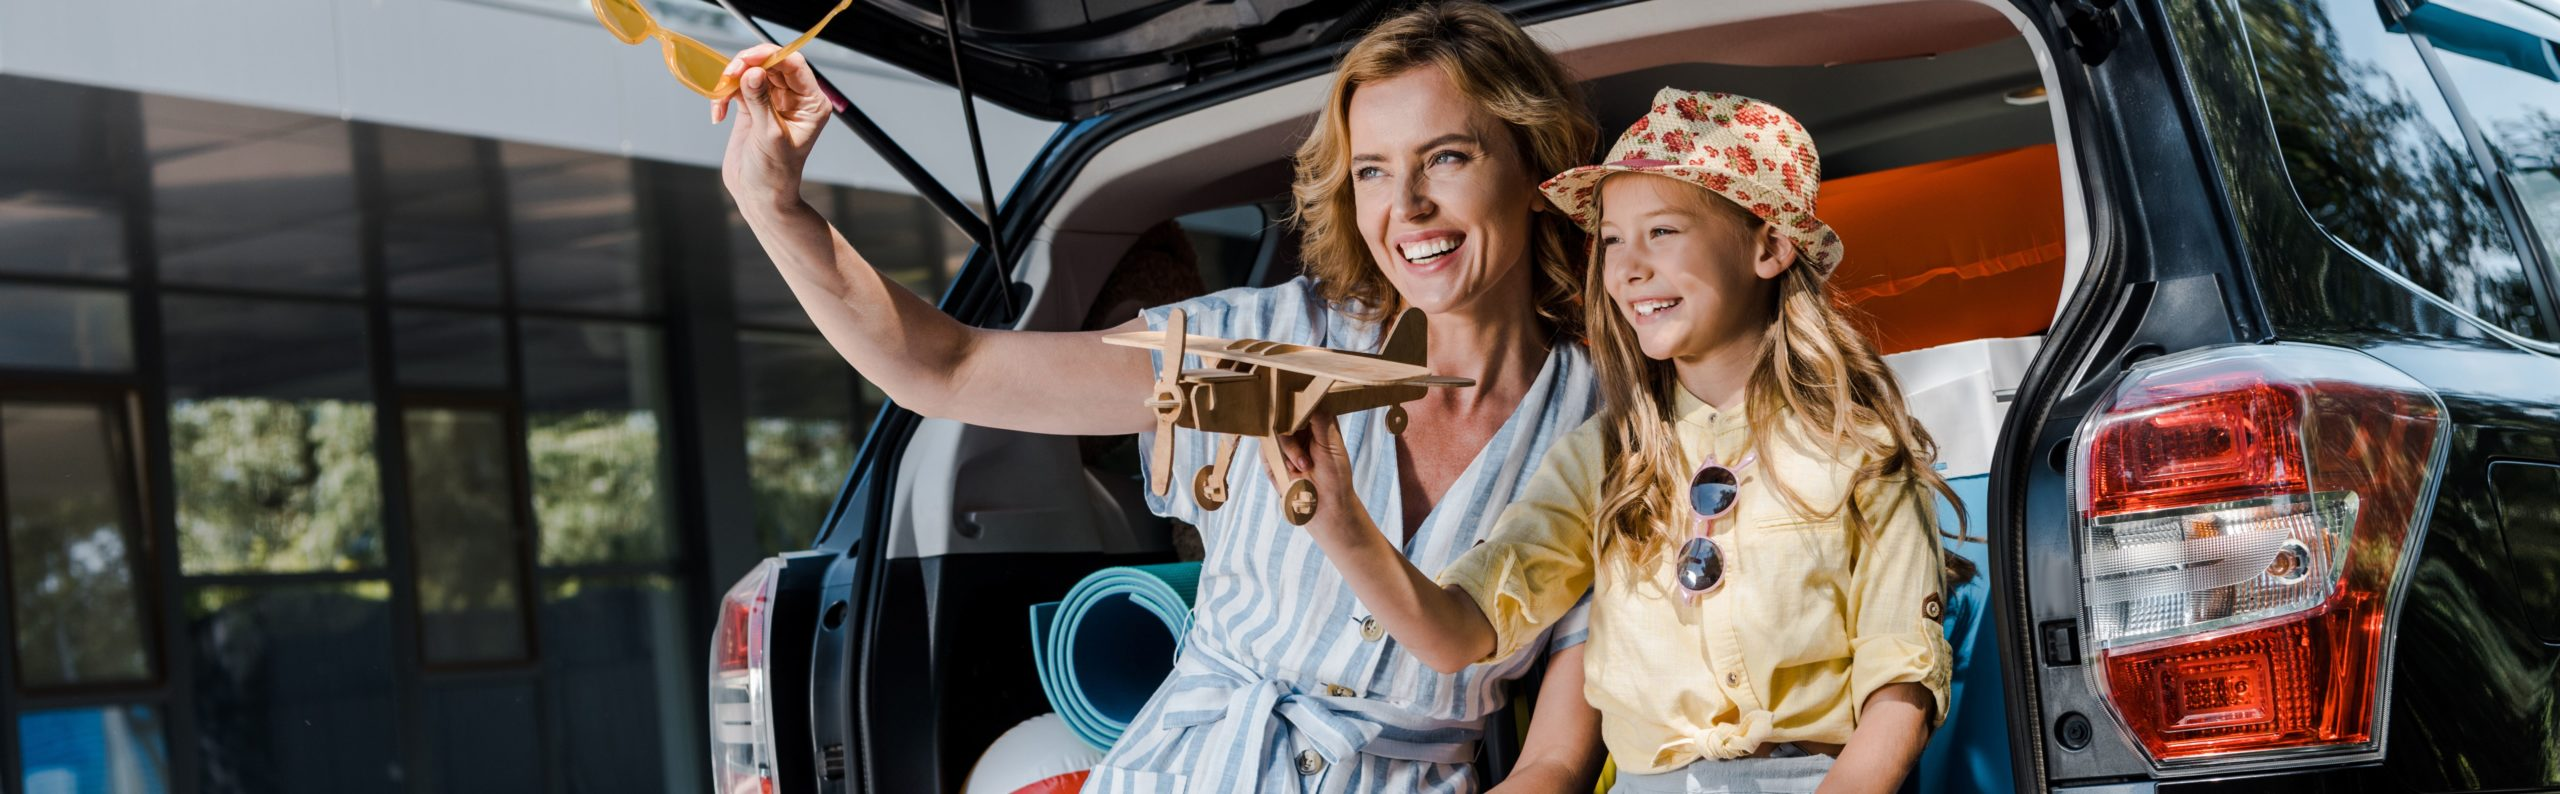 Mother and daughter sitting in the trunk of vehicle playing with a toy plane.